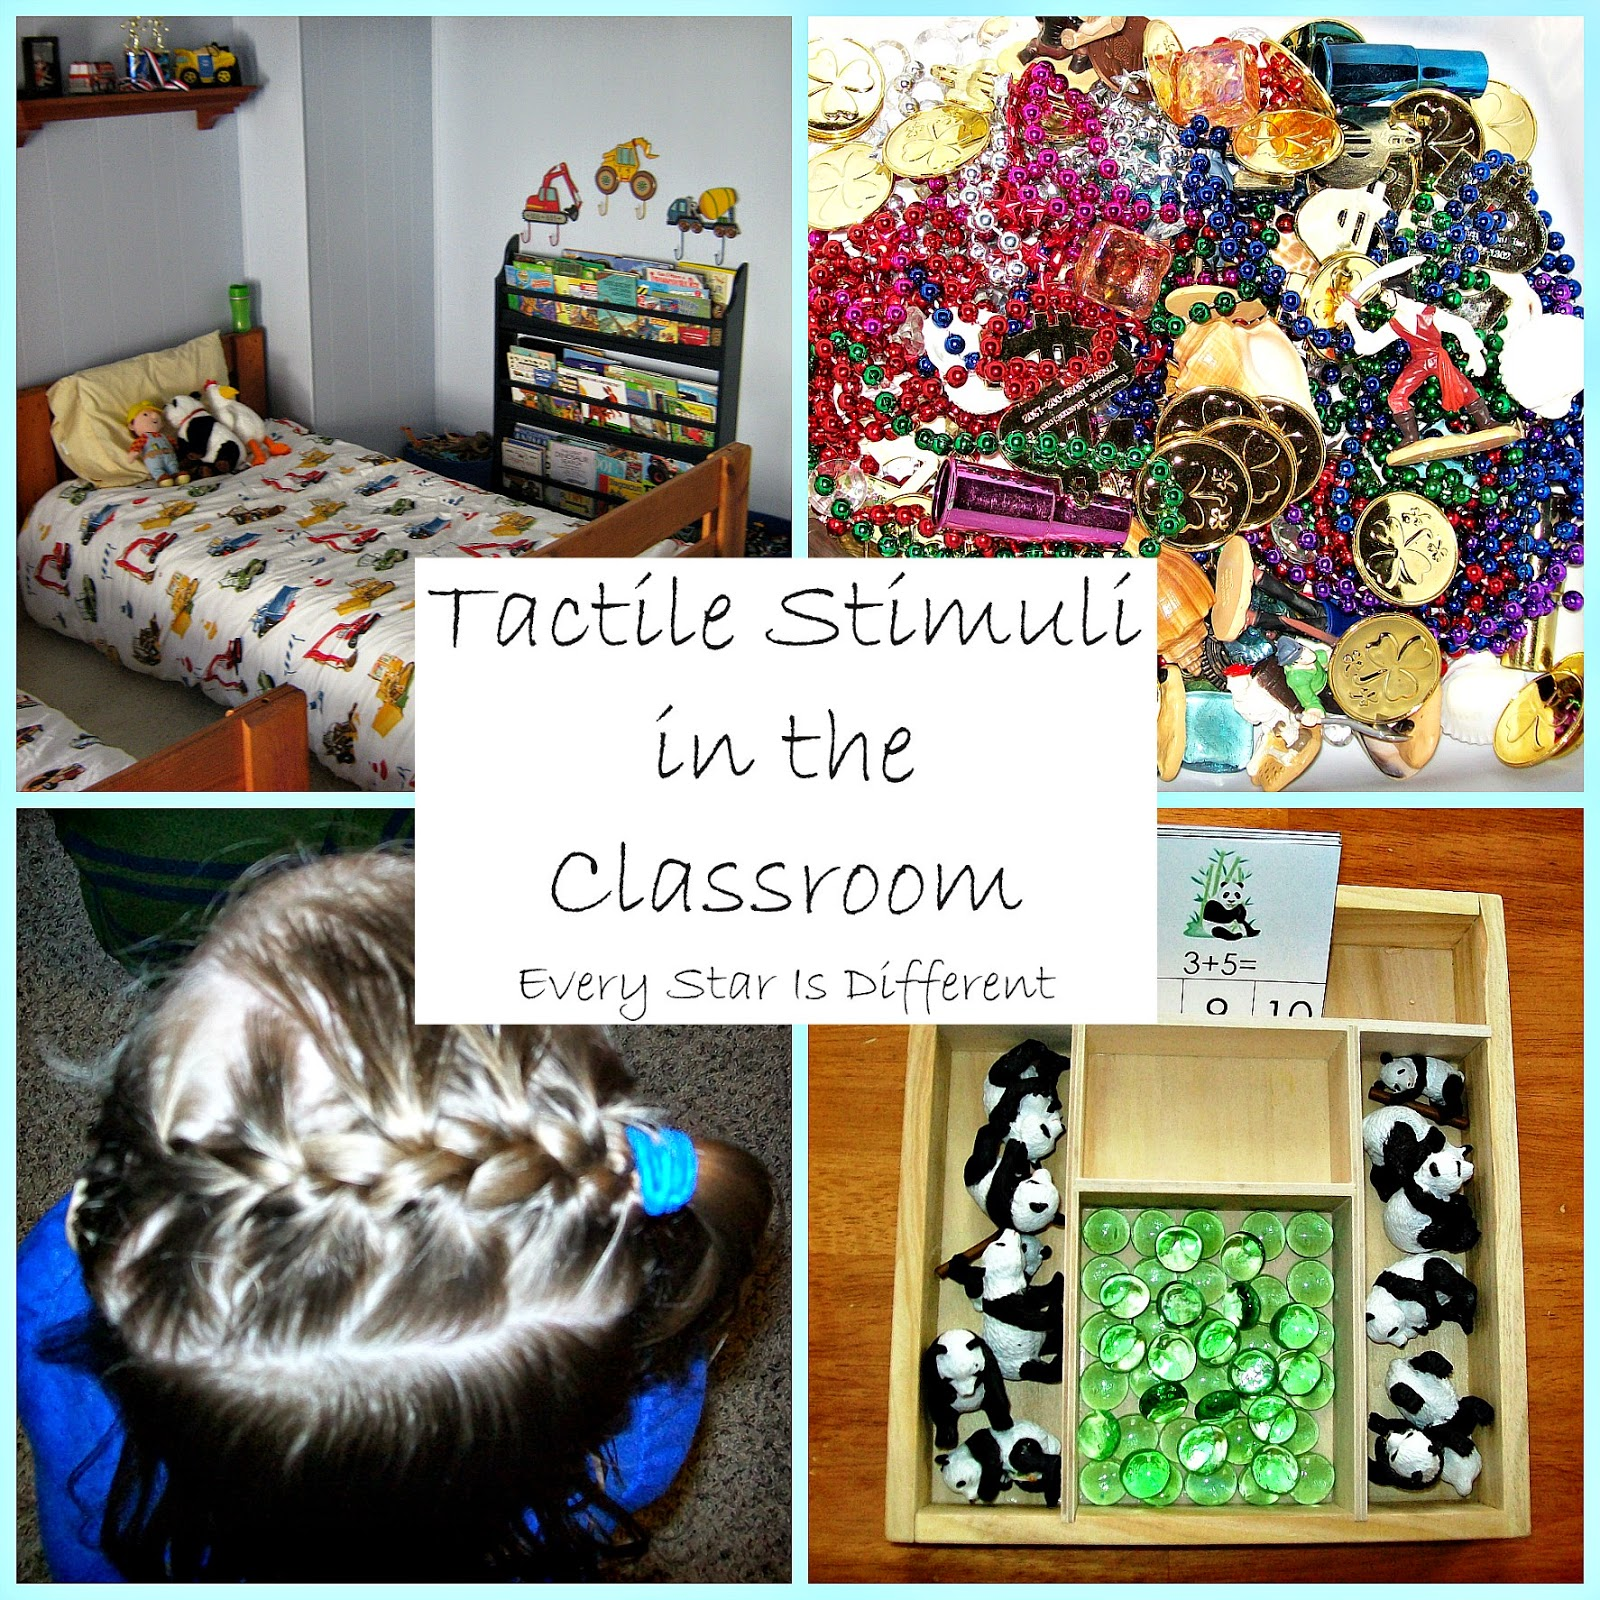 Tactile Stimuli in the Classroom